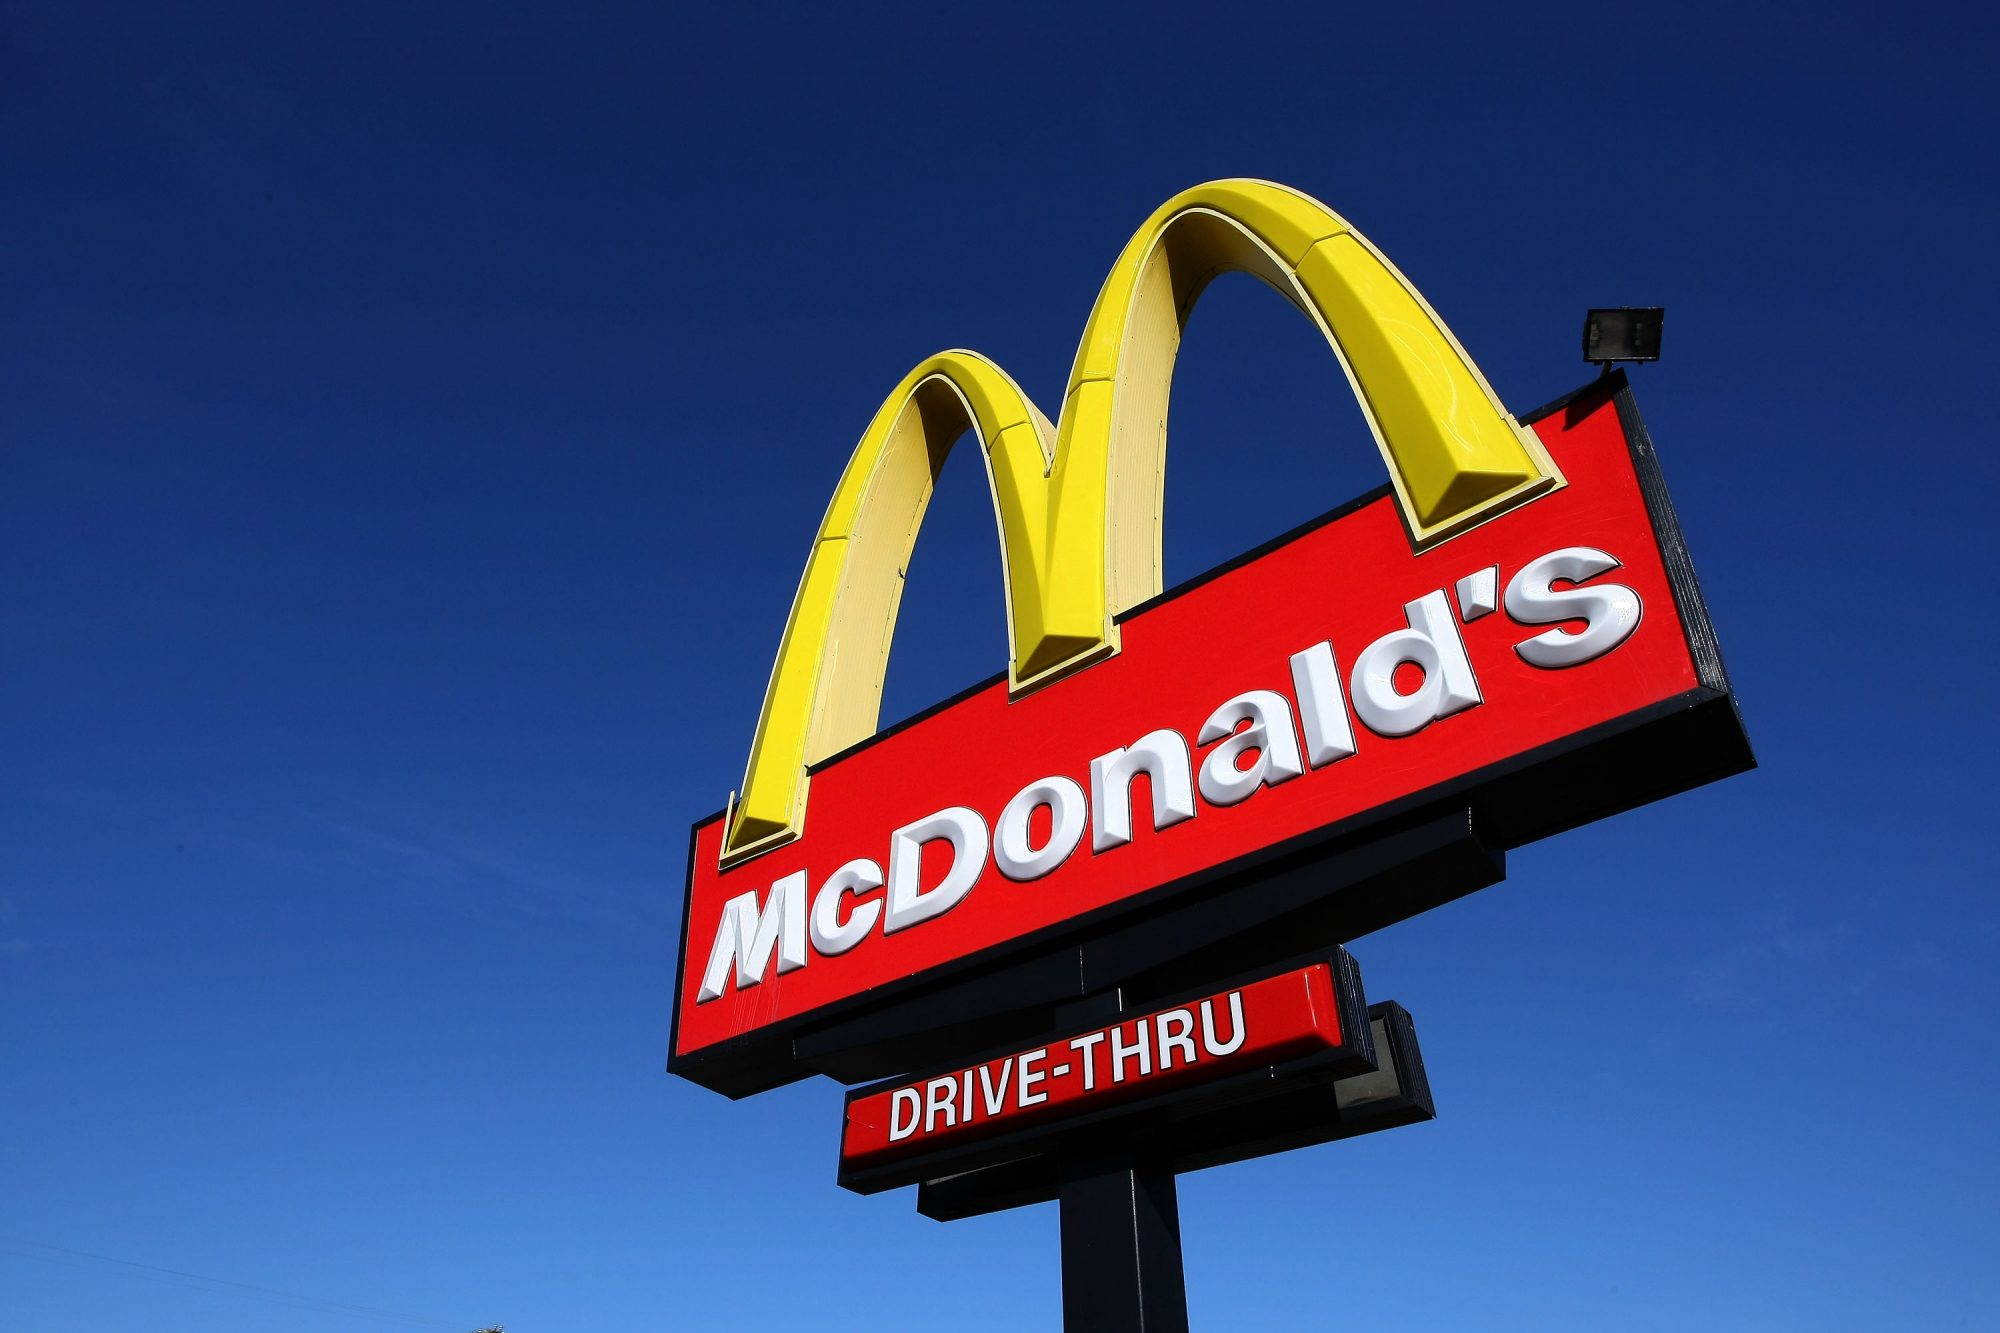 The Latest Dessert Craze At McDonald's Is Not On the Menu